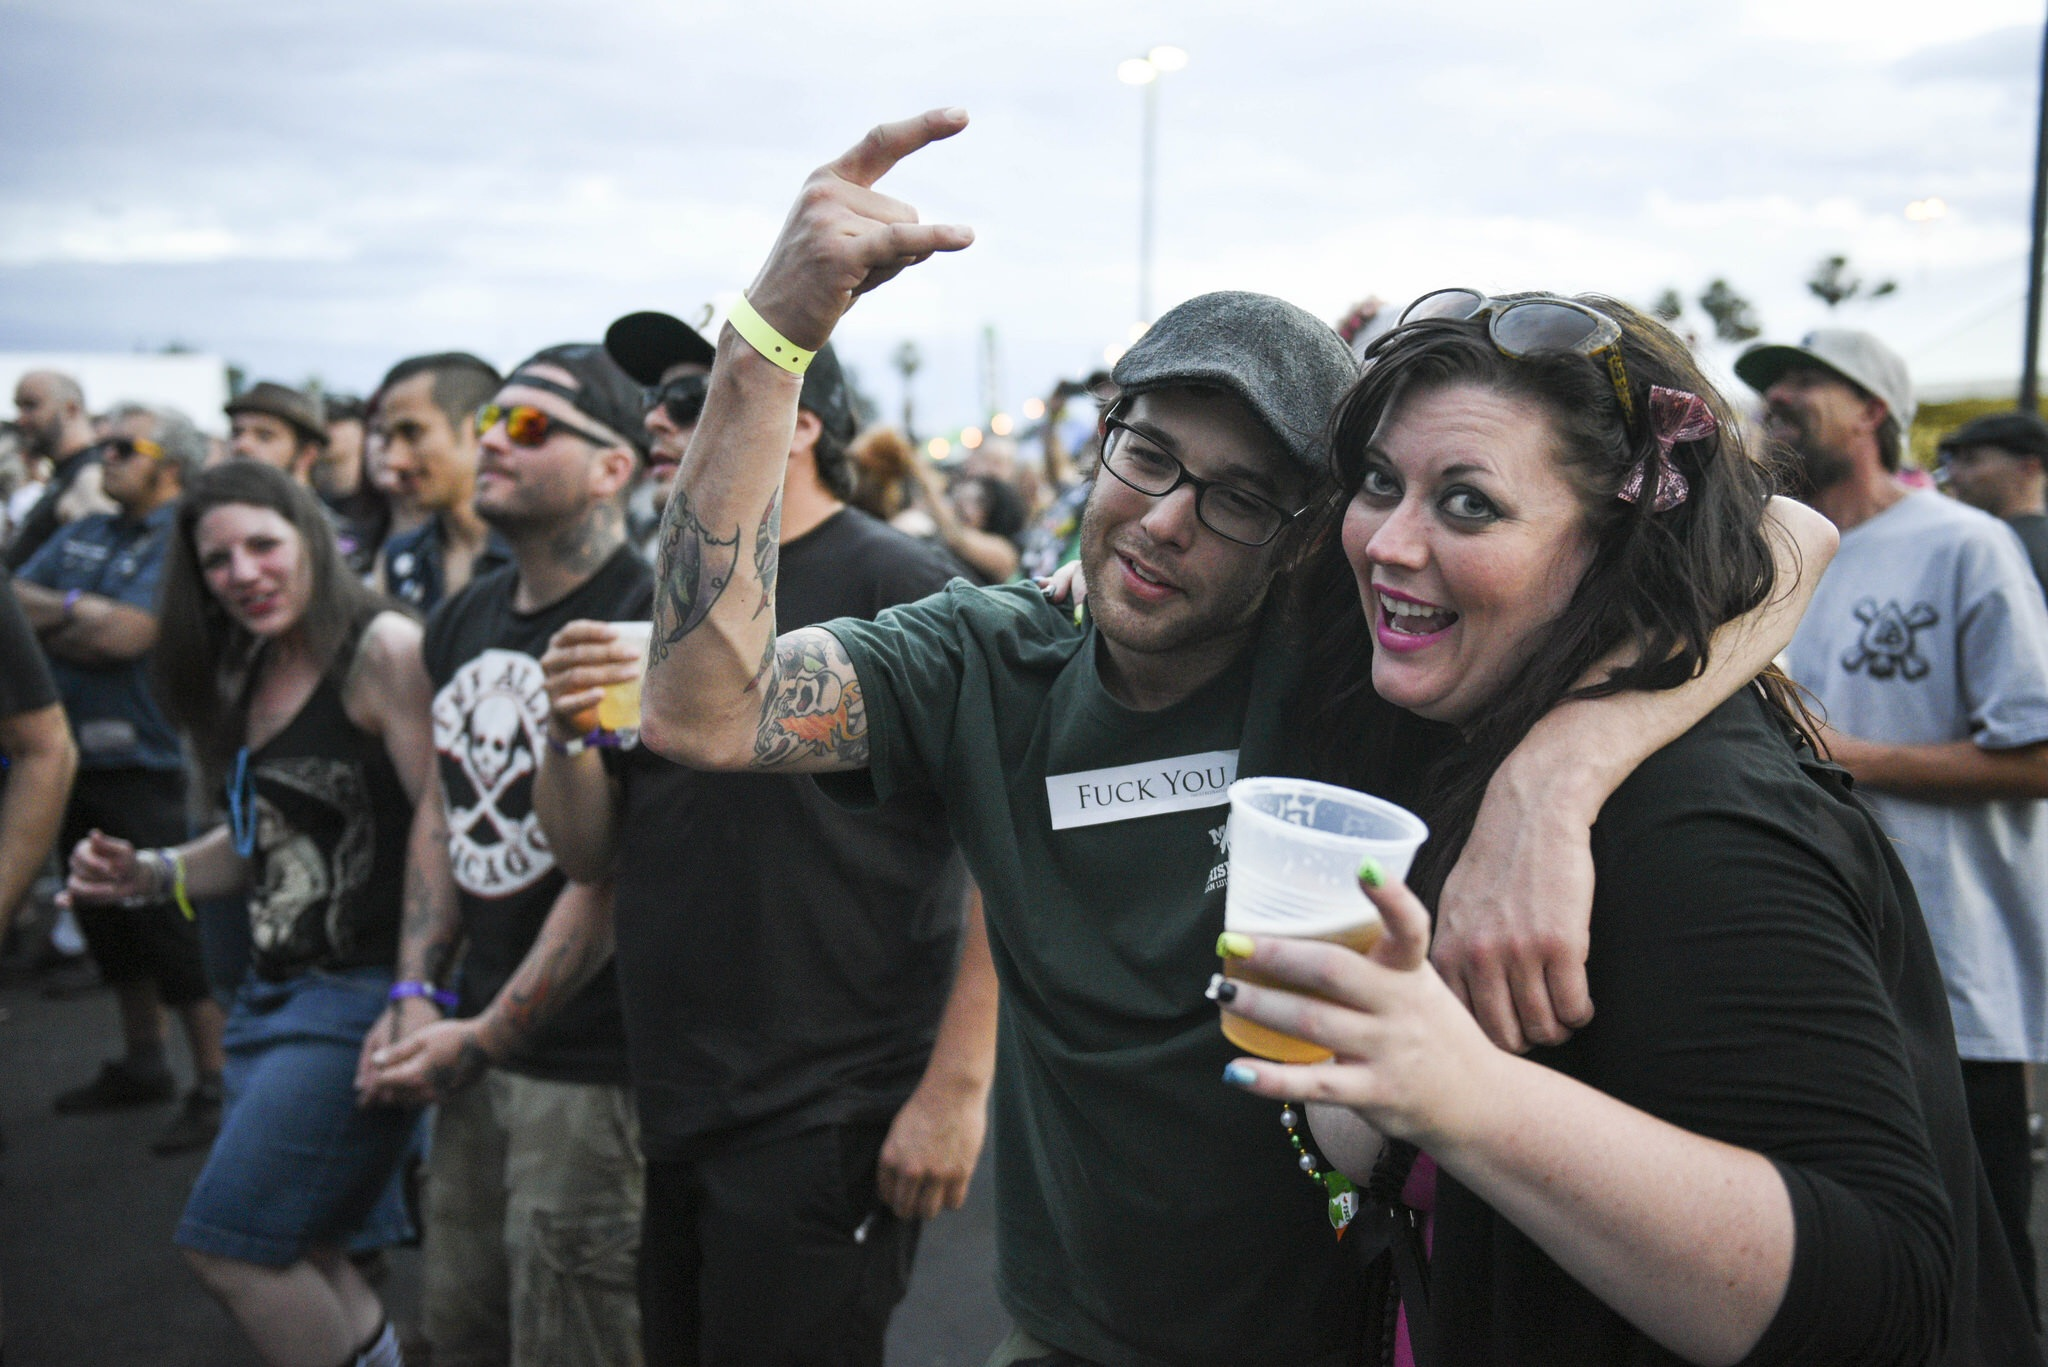 The audience during Jello Biafra & The Guantanamo School Of Medicine's set.